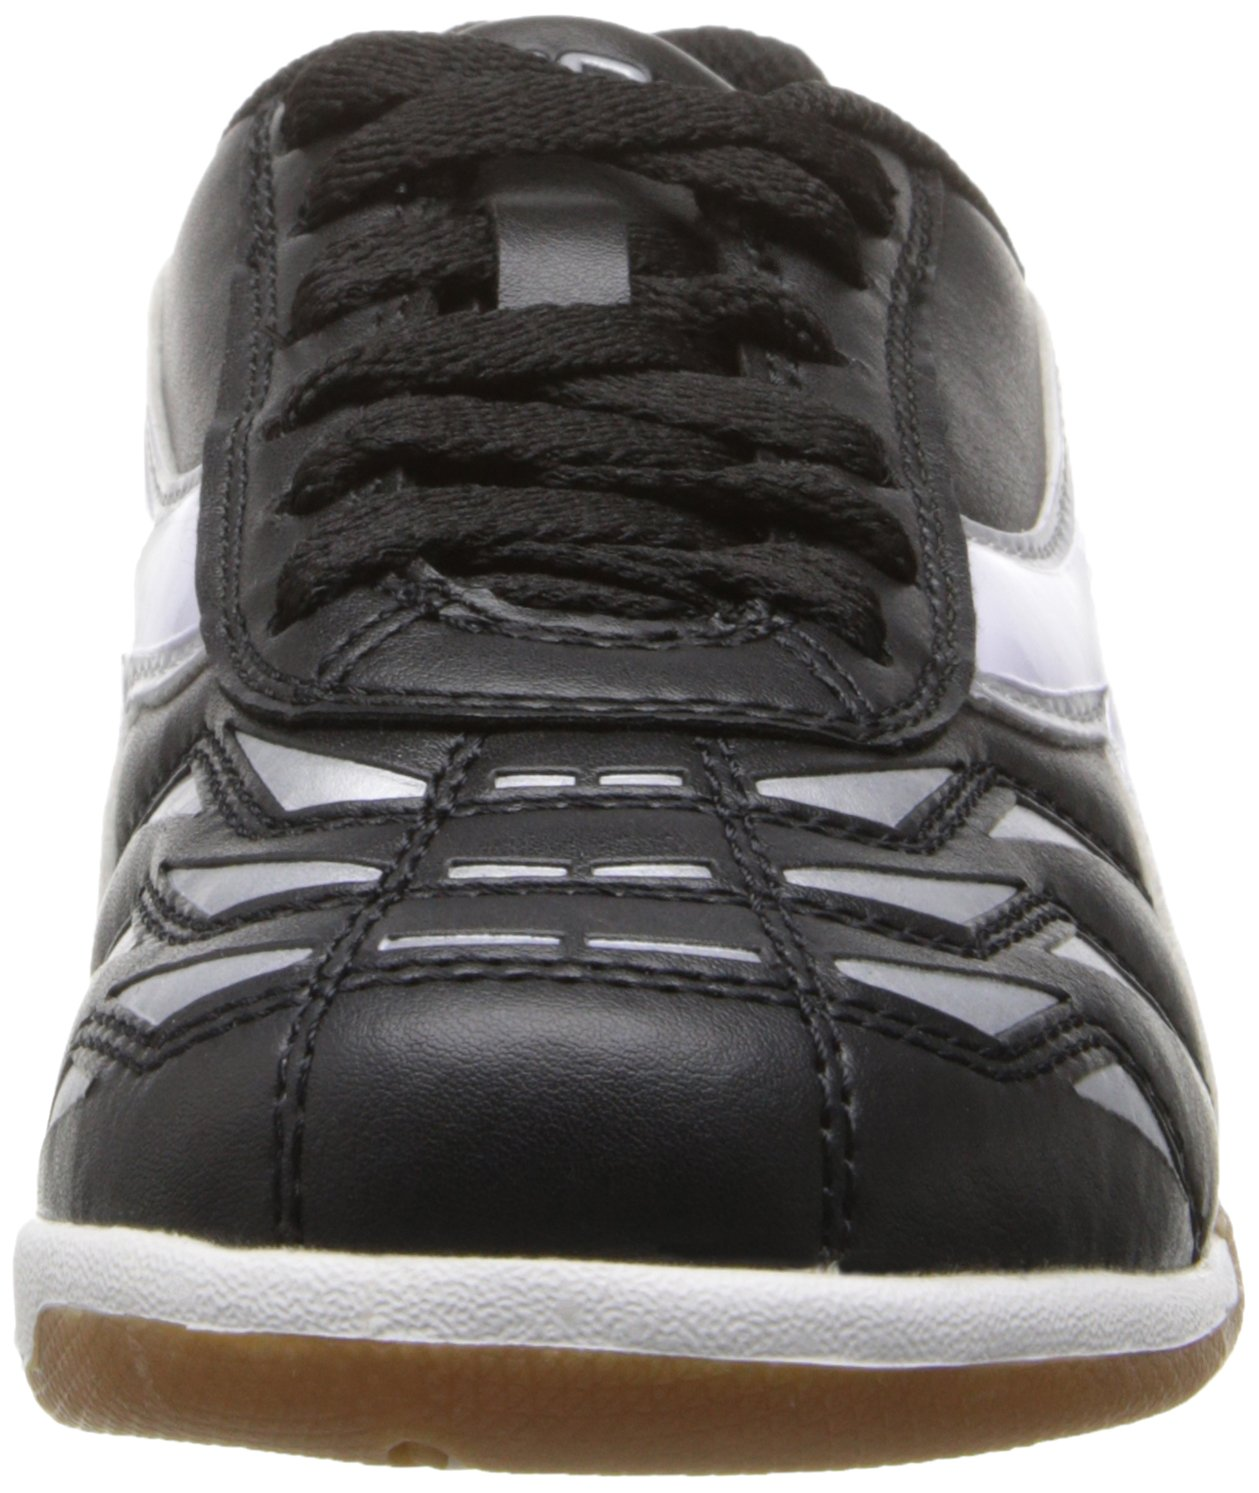 Diadora Capitano ID JR Indoor Soccer Shoe, Black/White, 3.5 M US Big Kid by Diadora (Image #4)